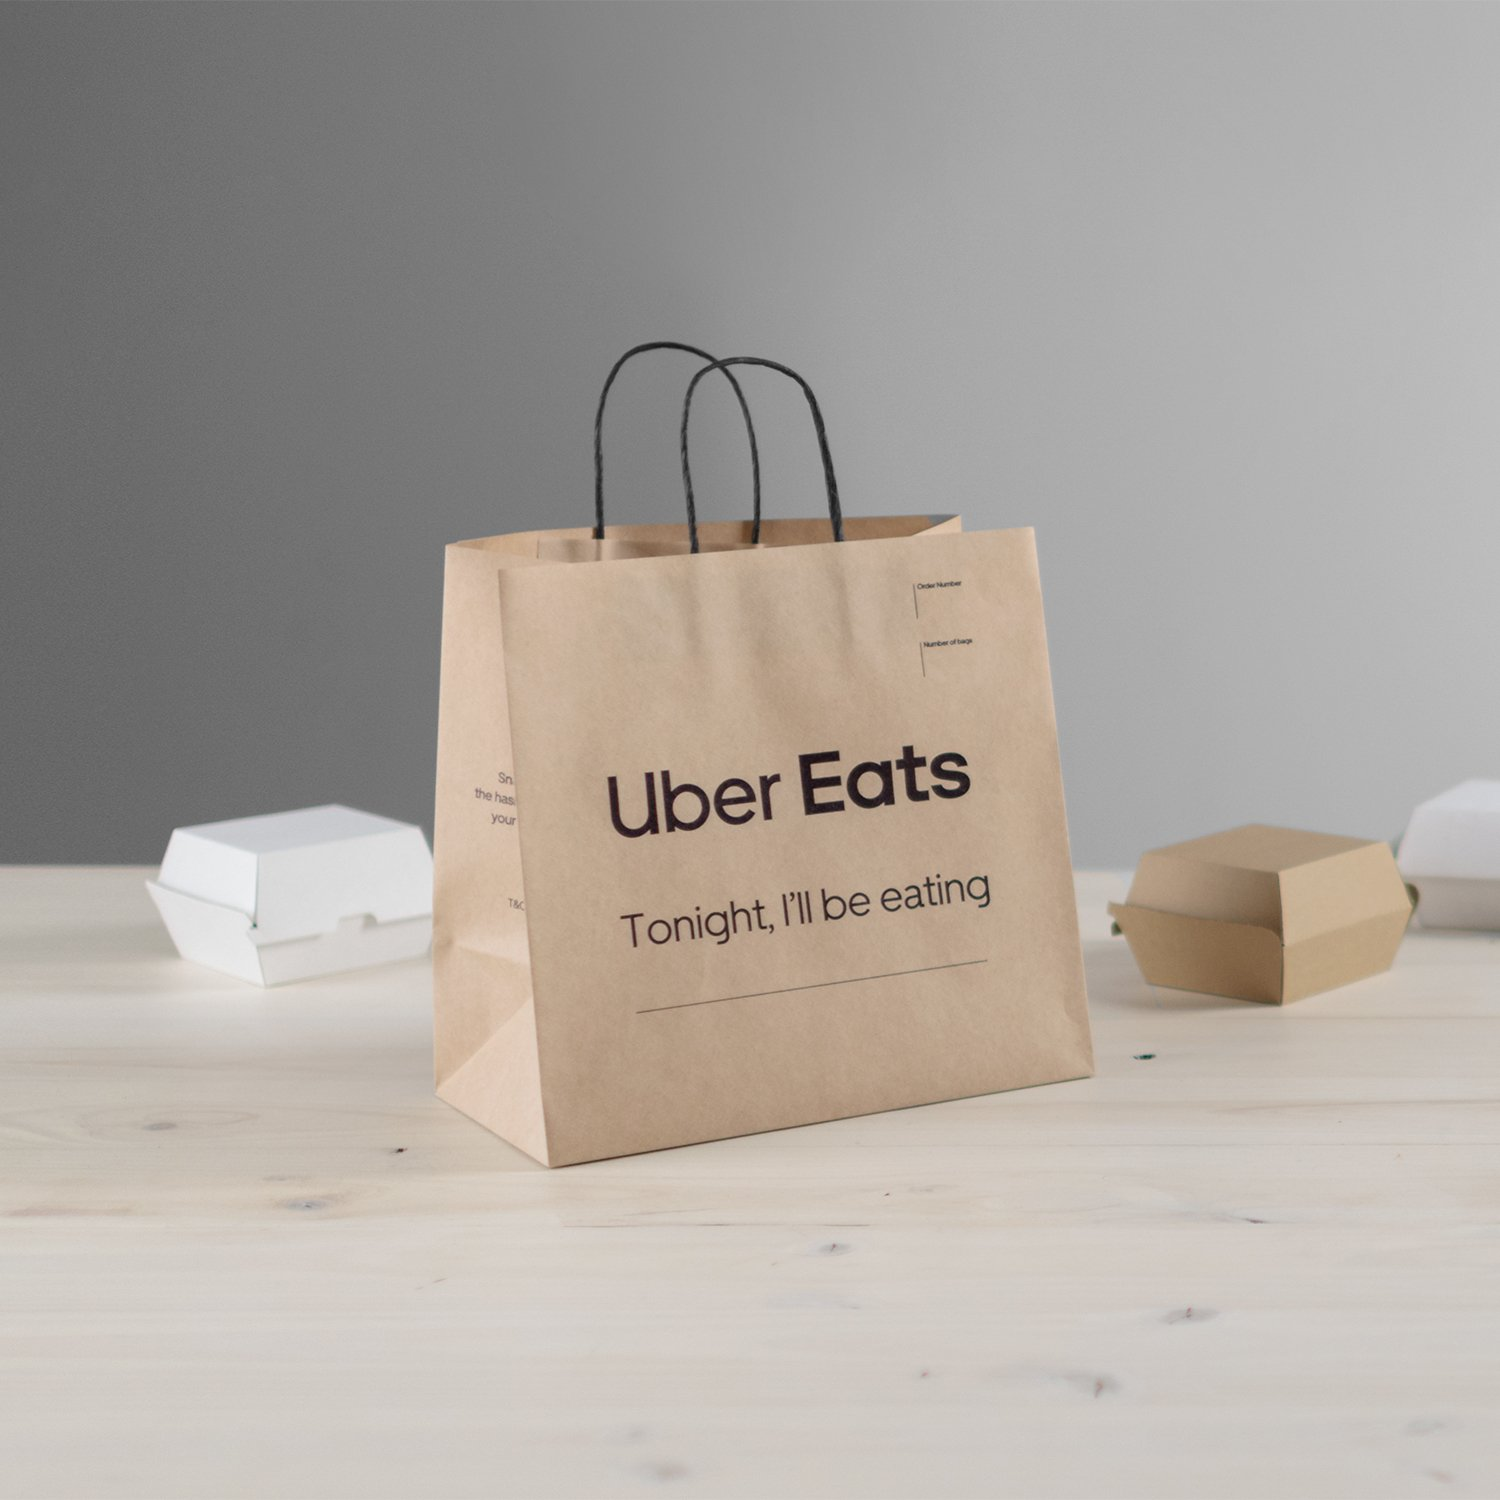 THE UBER EATS DELIVERY BAG